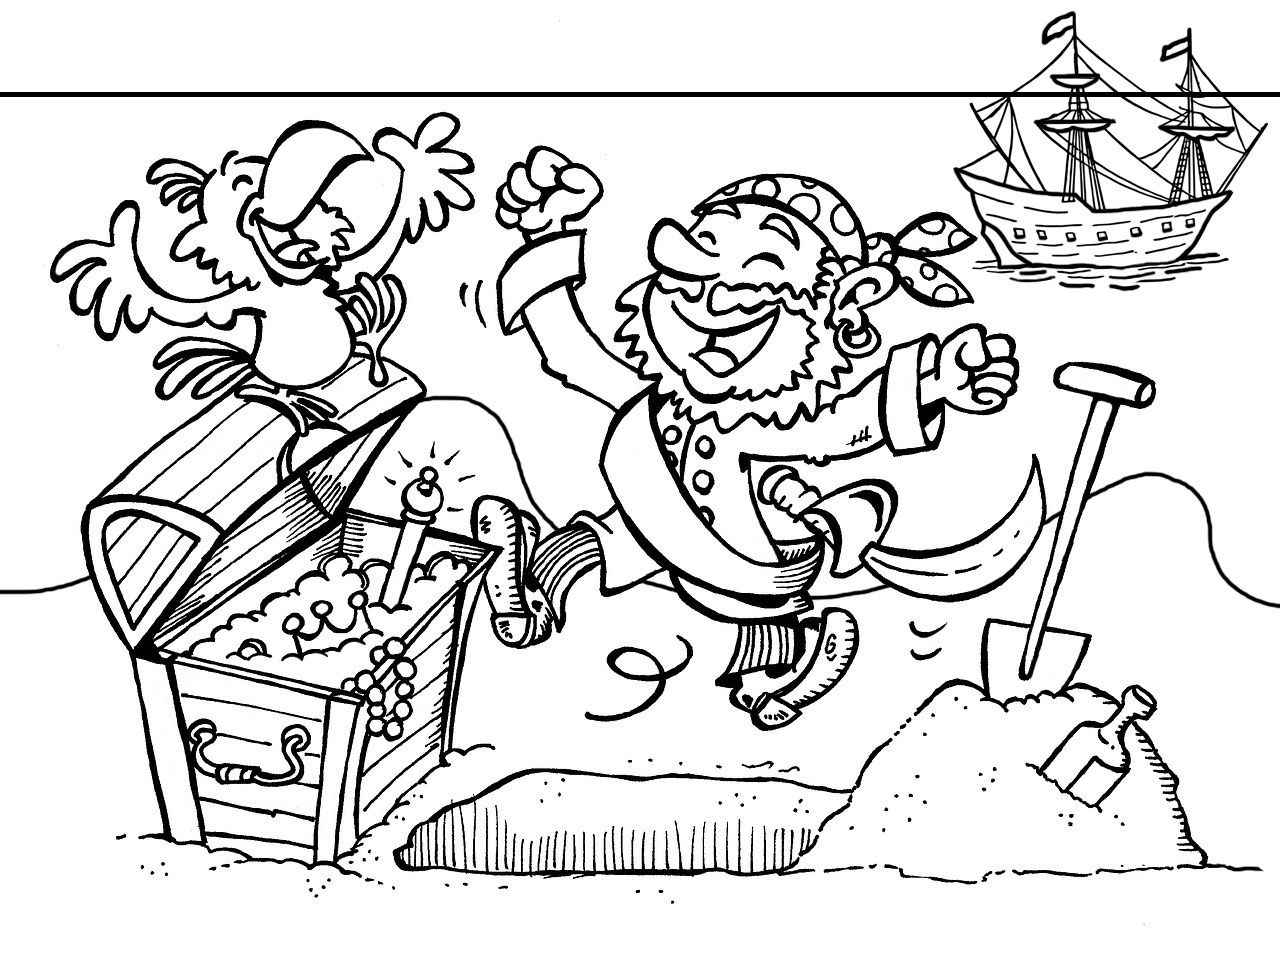 A colouring page of a pirate, his parrot and a chest of treasure